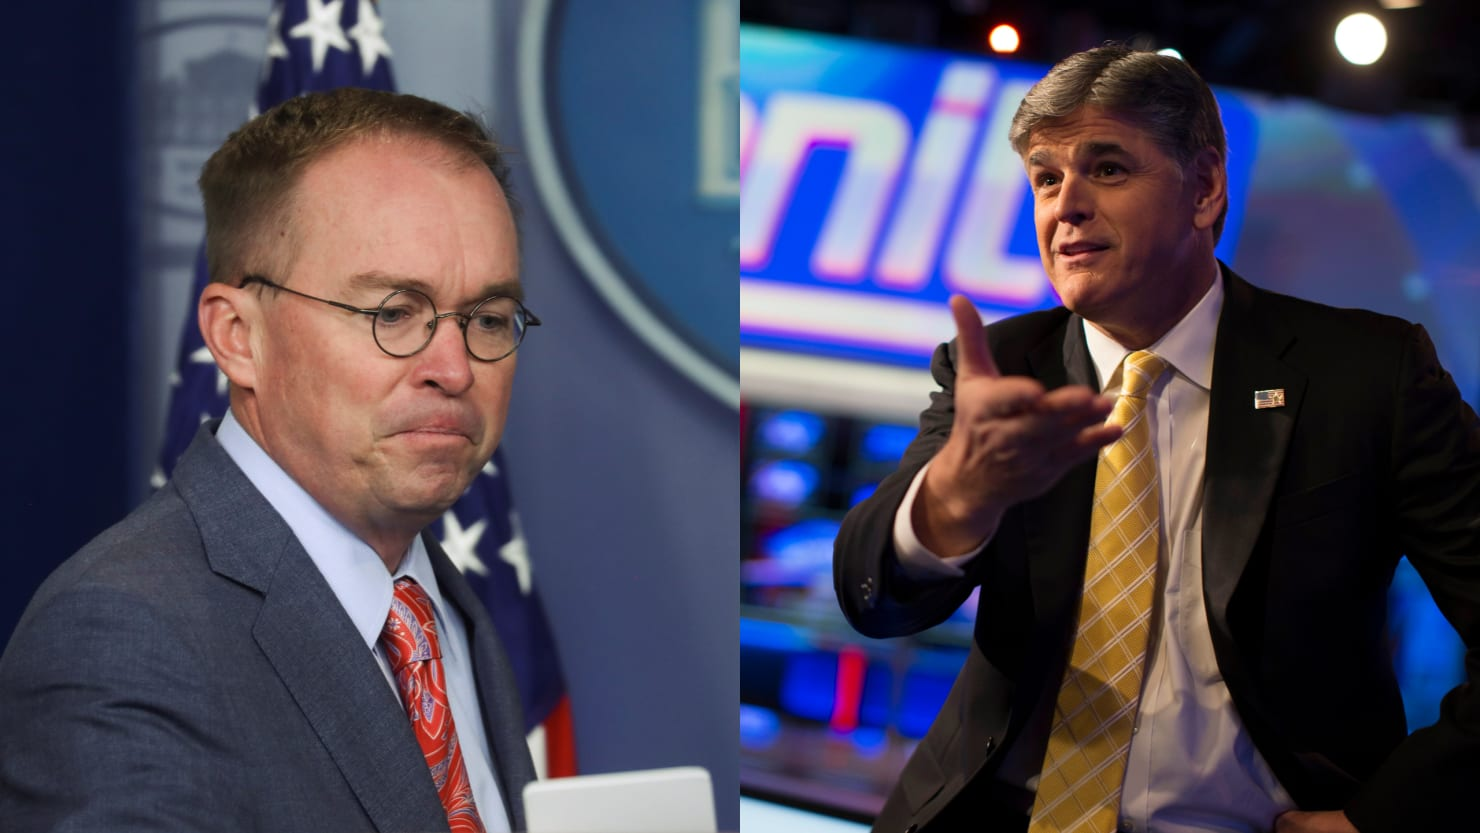 Sean Hannity Goes Off on Mick Mulvaney: 'I Just Think He's Dumb'